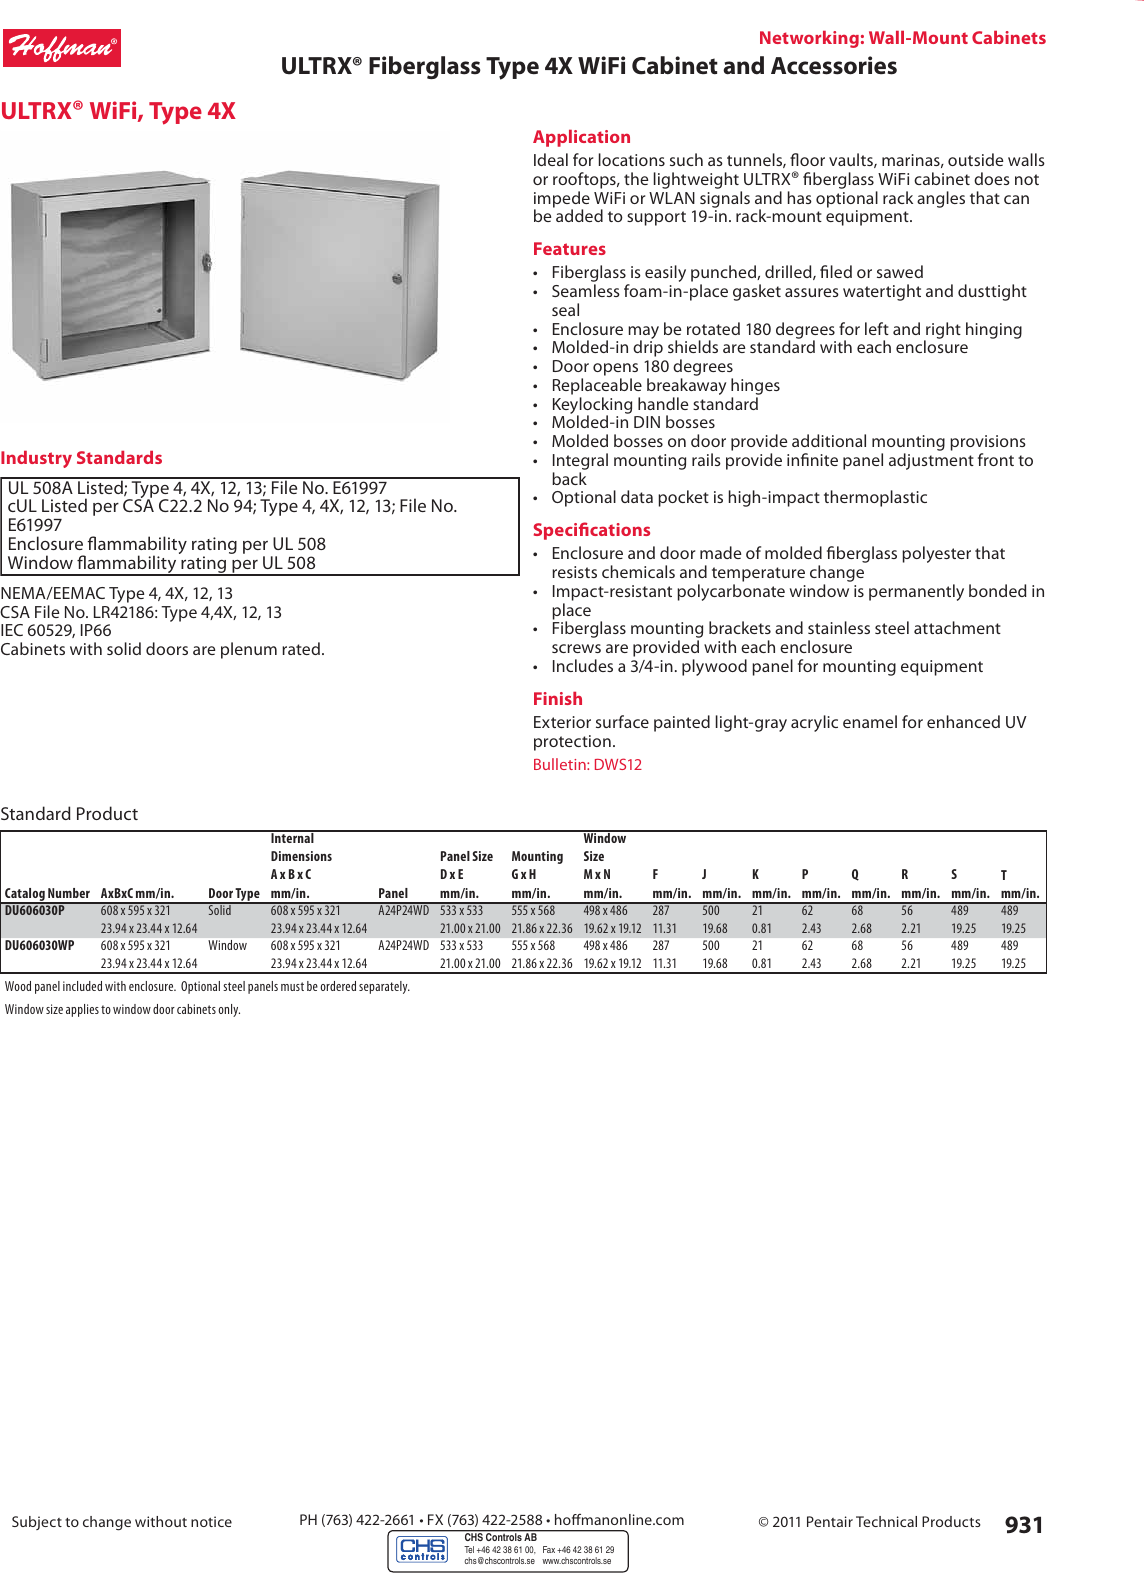 Specifiers Guide Chapter 9 60868 Catalog